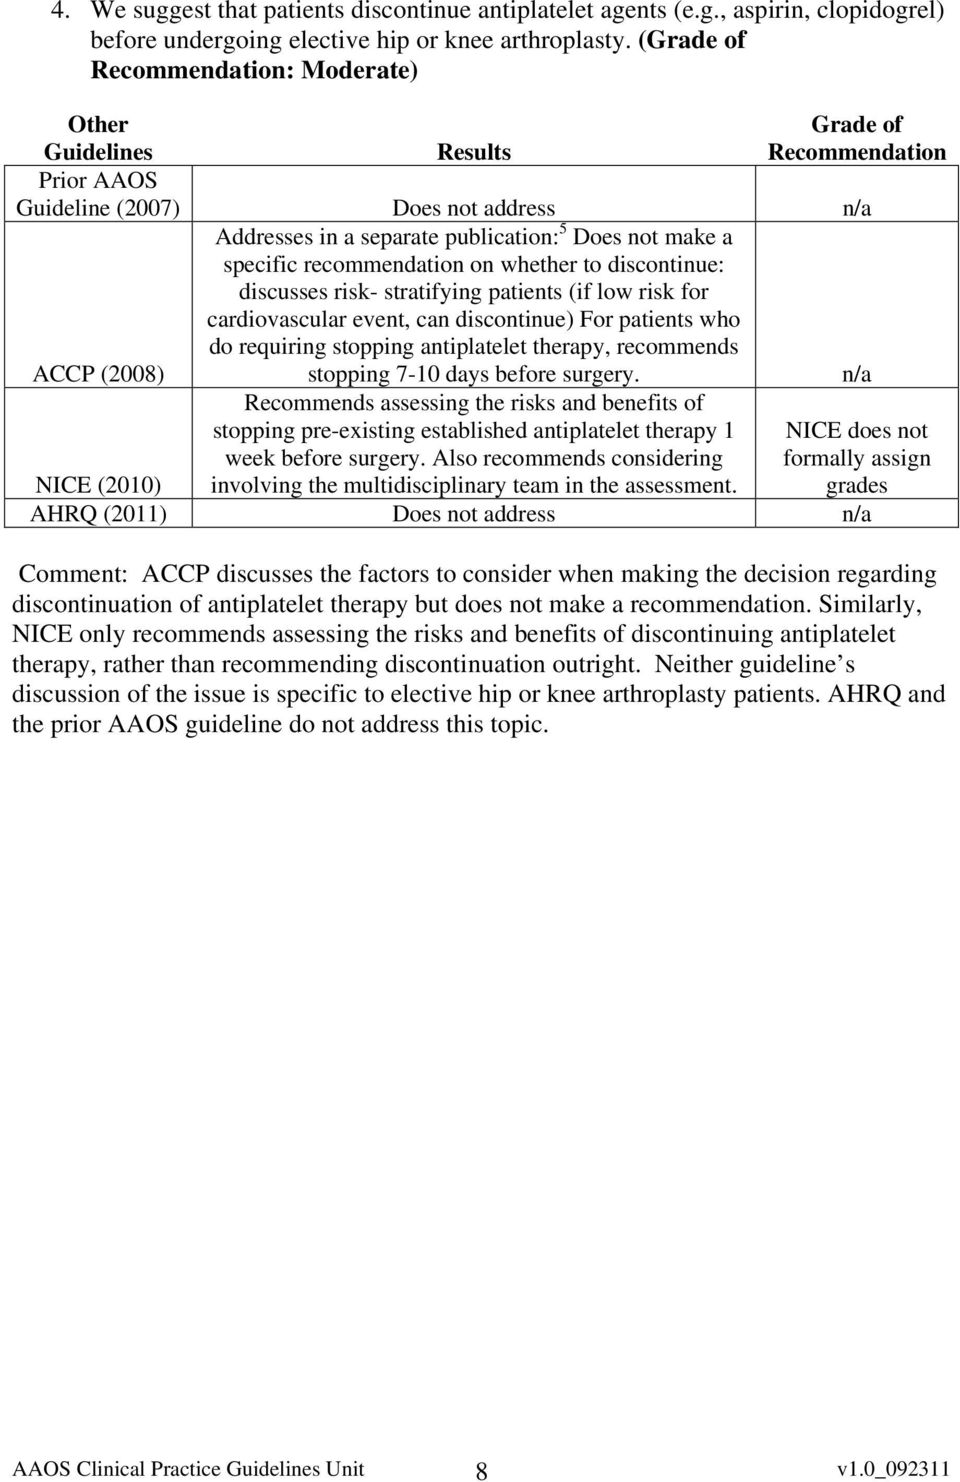 a specific recommendation on whether to discontinue: discusses risk- stratifying patients (if low risk for cardiovascular event, can discontinue) For patients who do requiring stopping antiplatelet